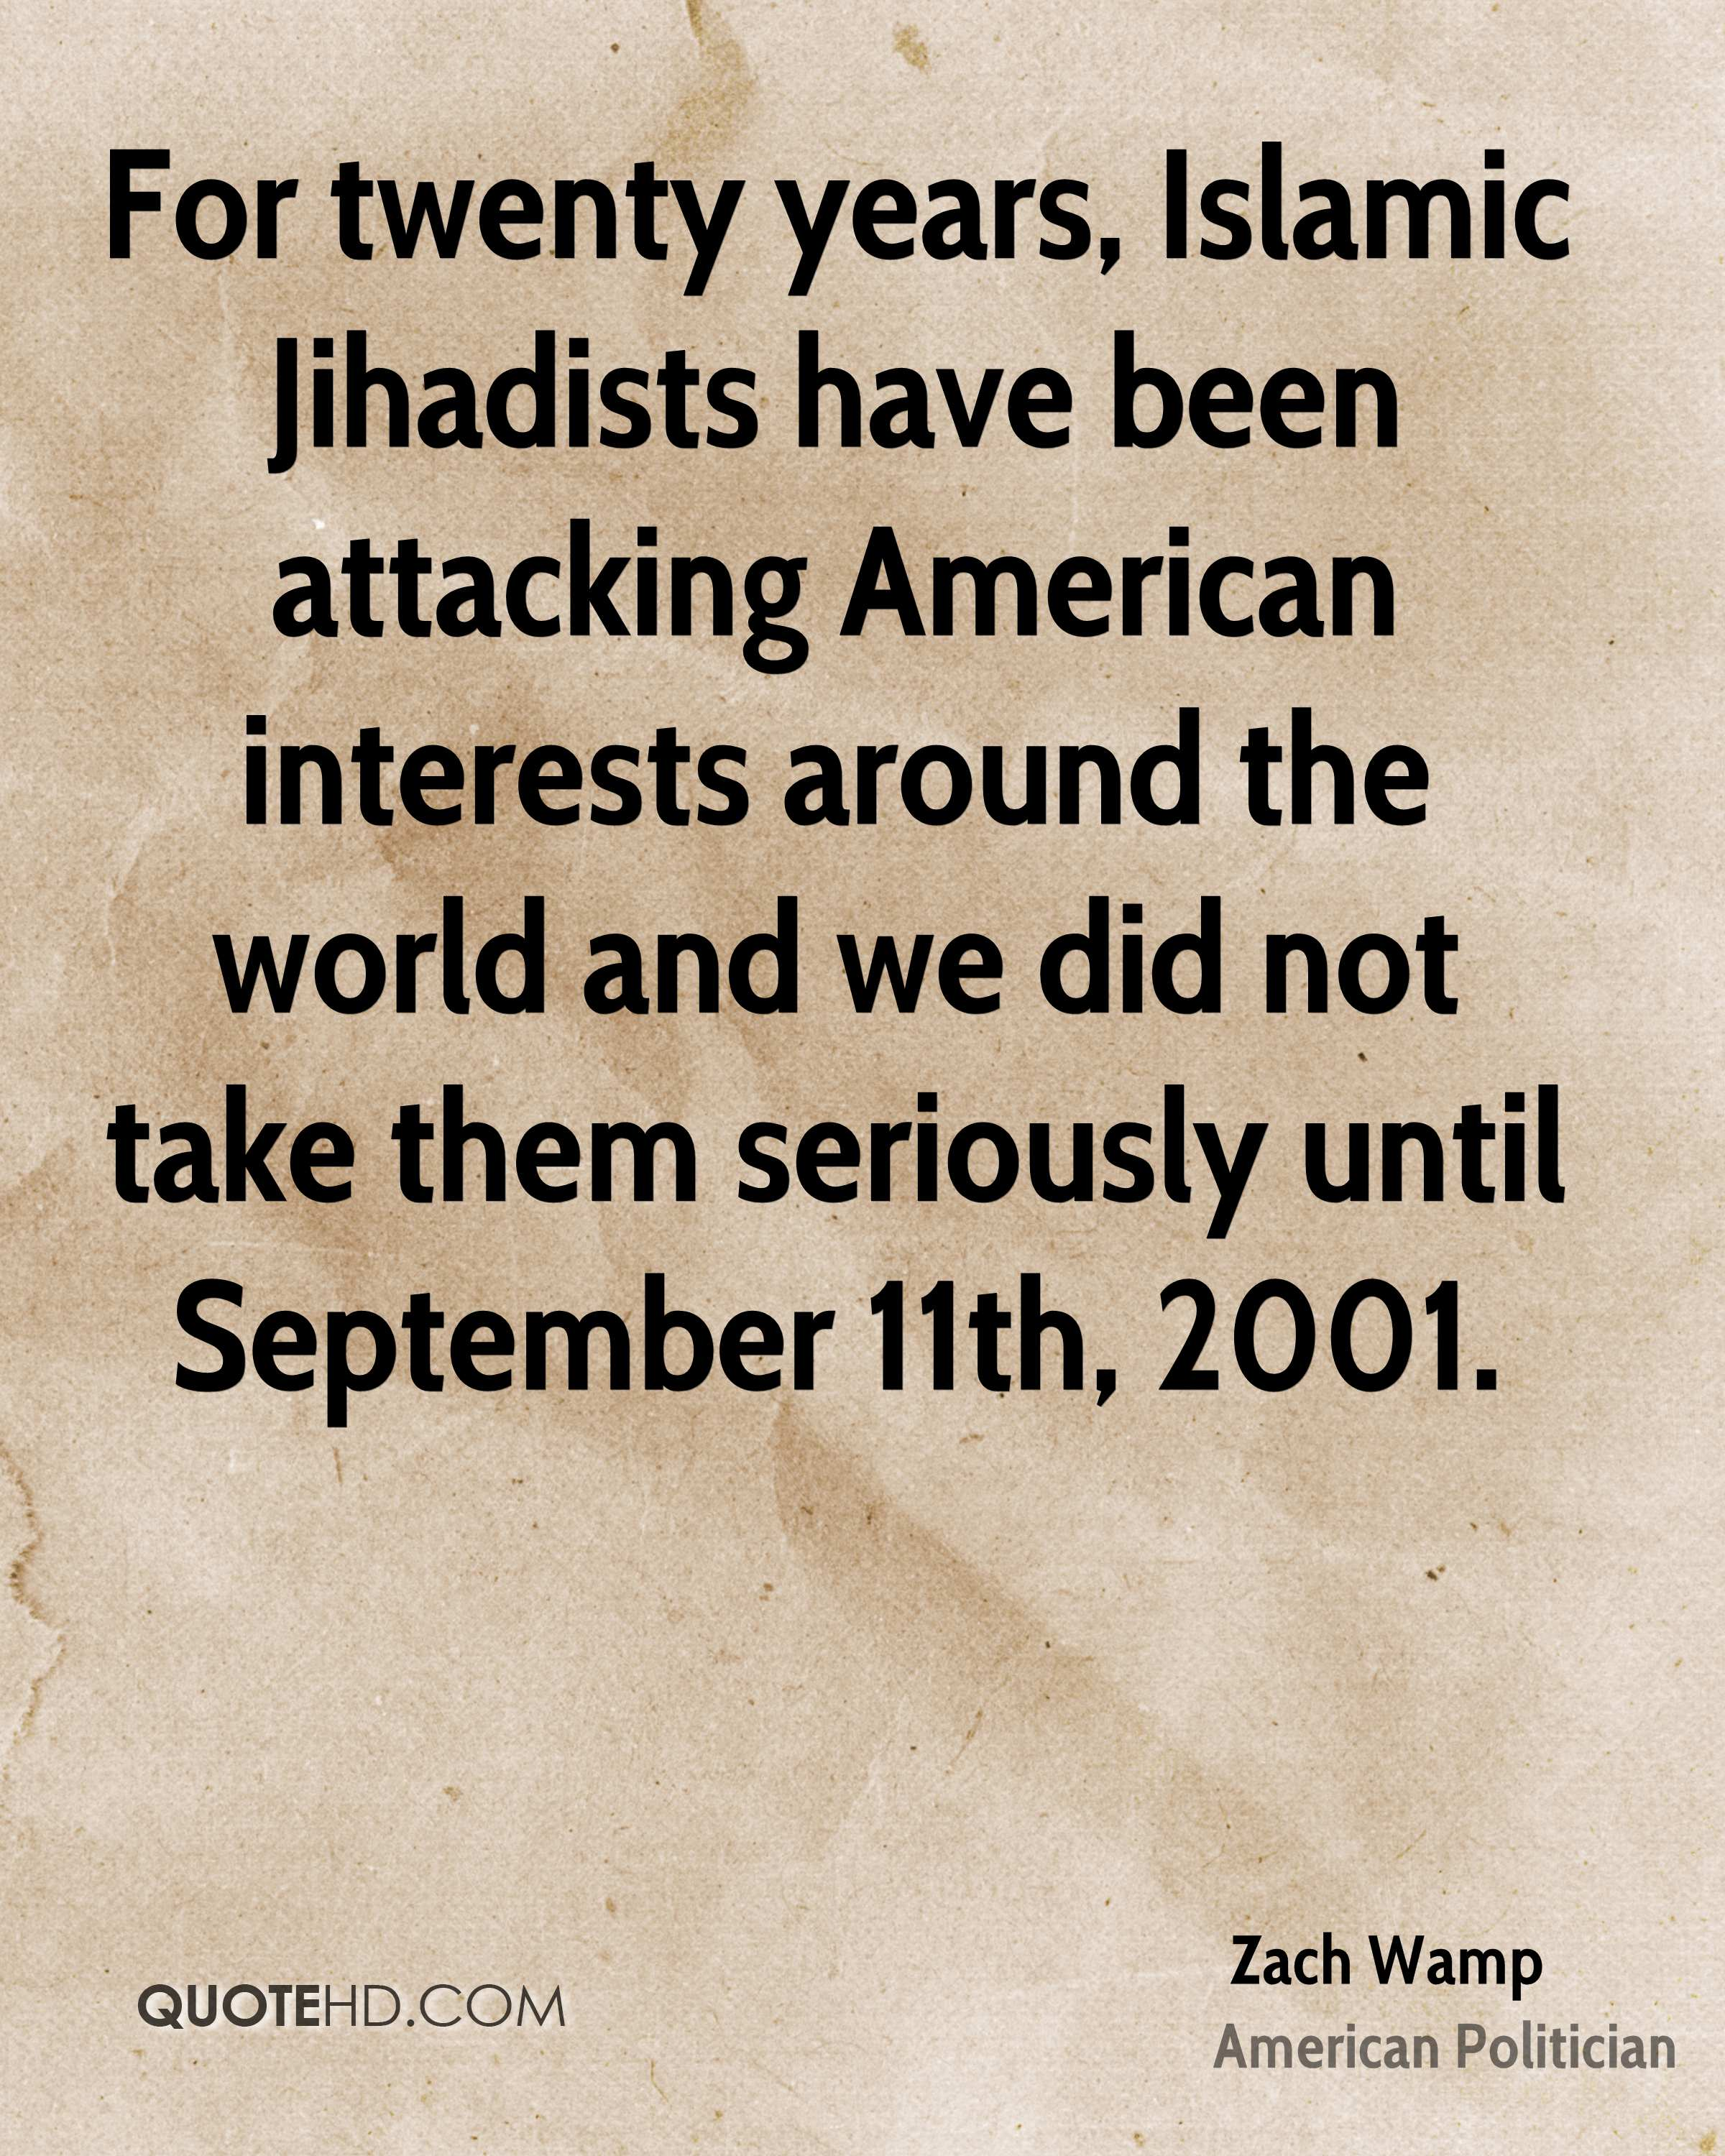 For twenty years, Islamic Jihadists have been attacking American interests around the world and we did not take them seriously until September 11th, 2001.